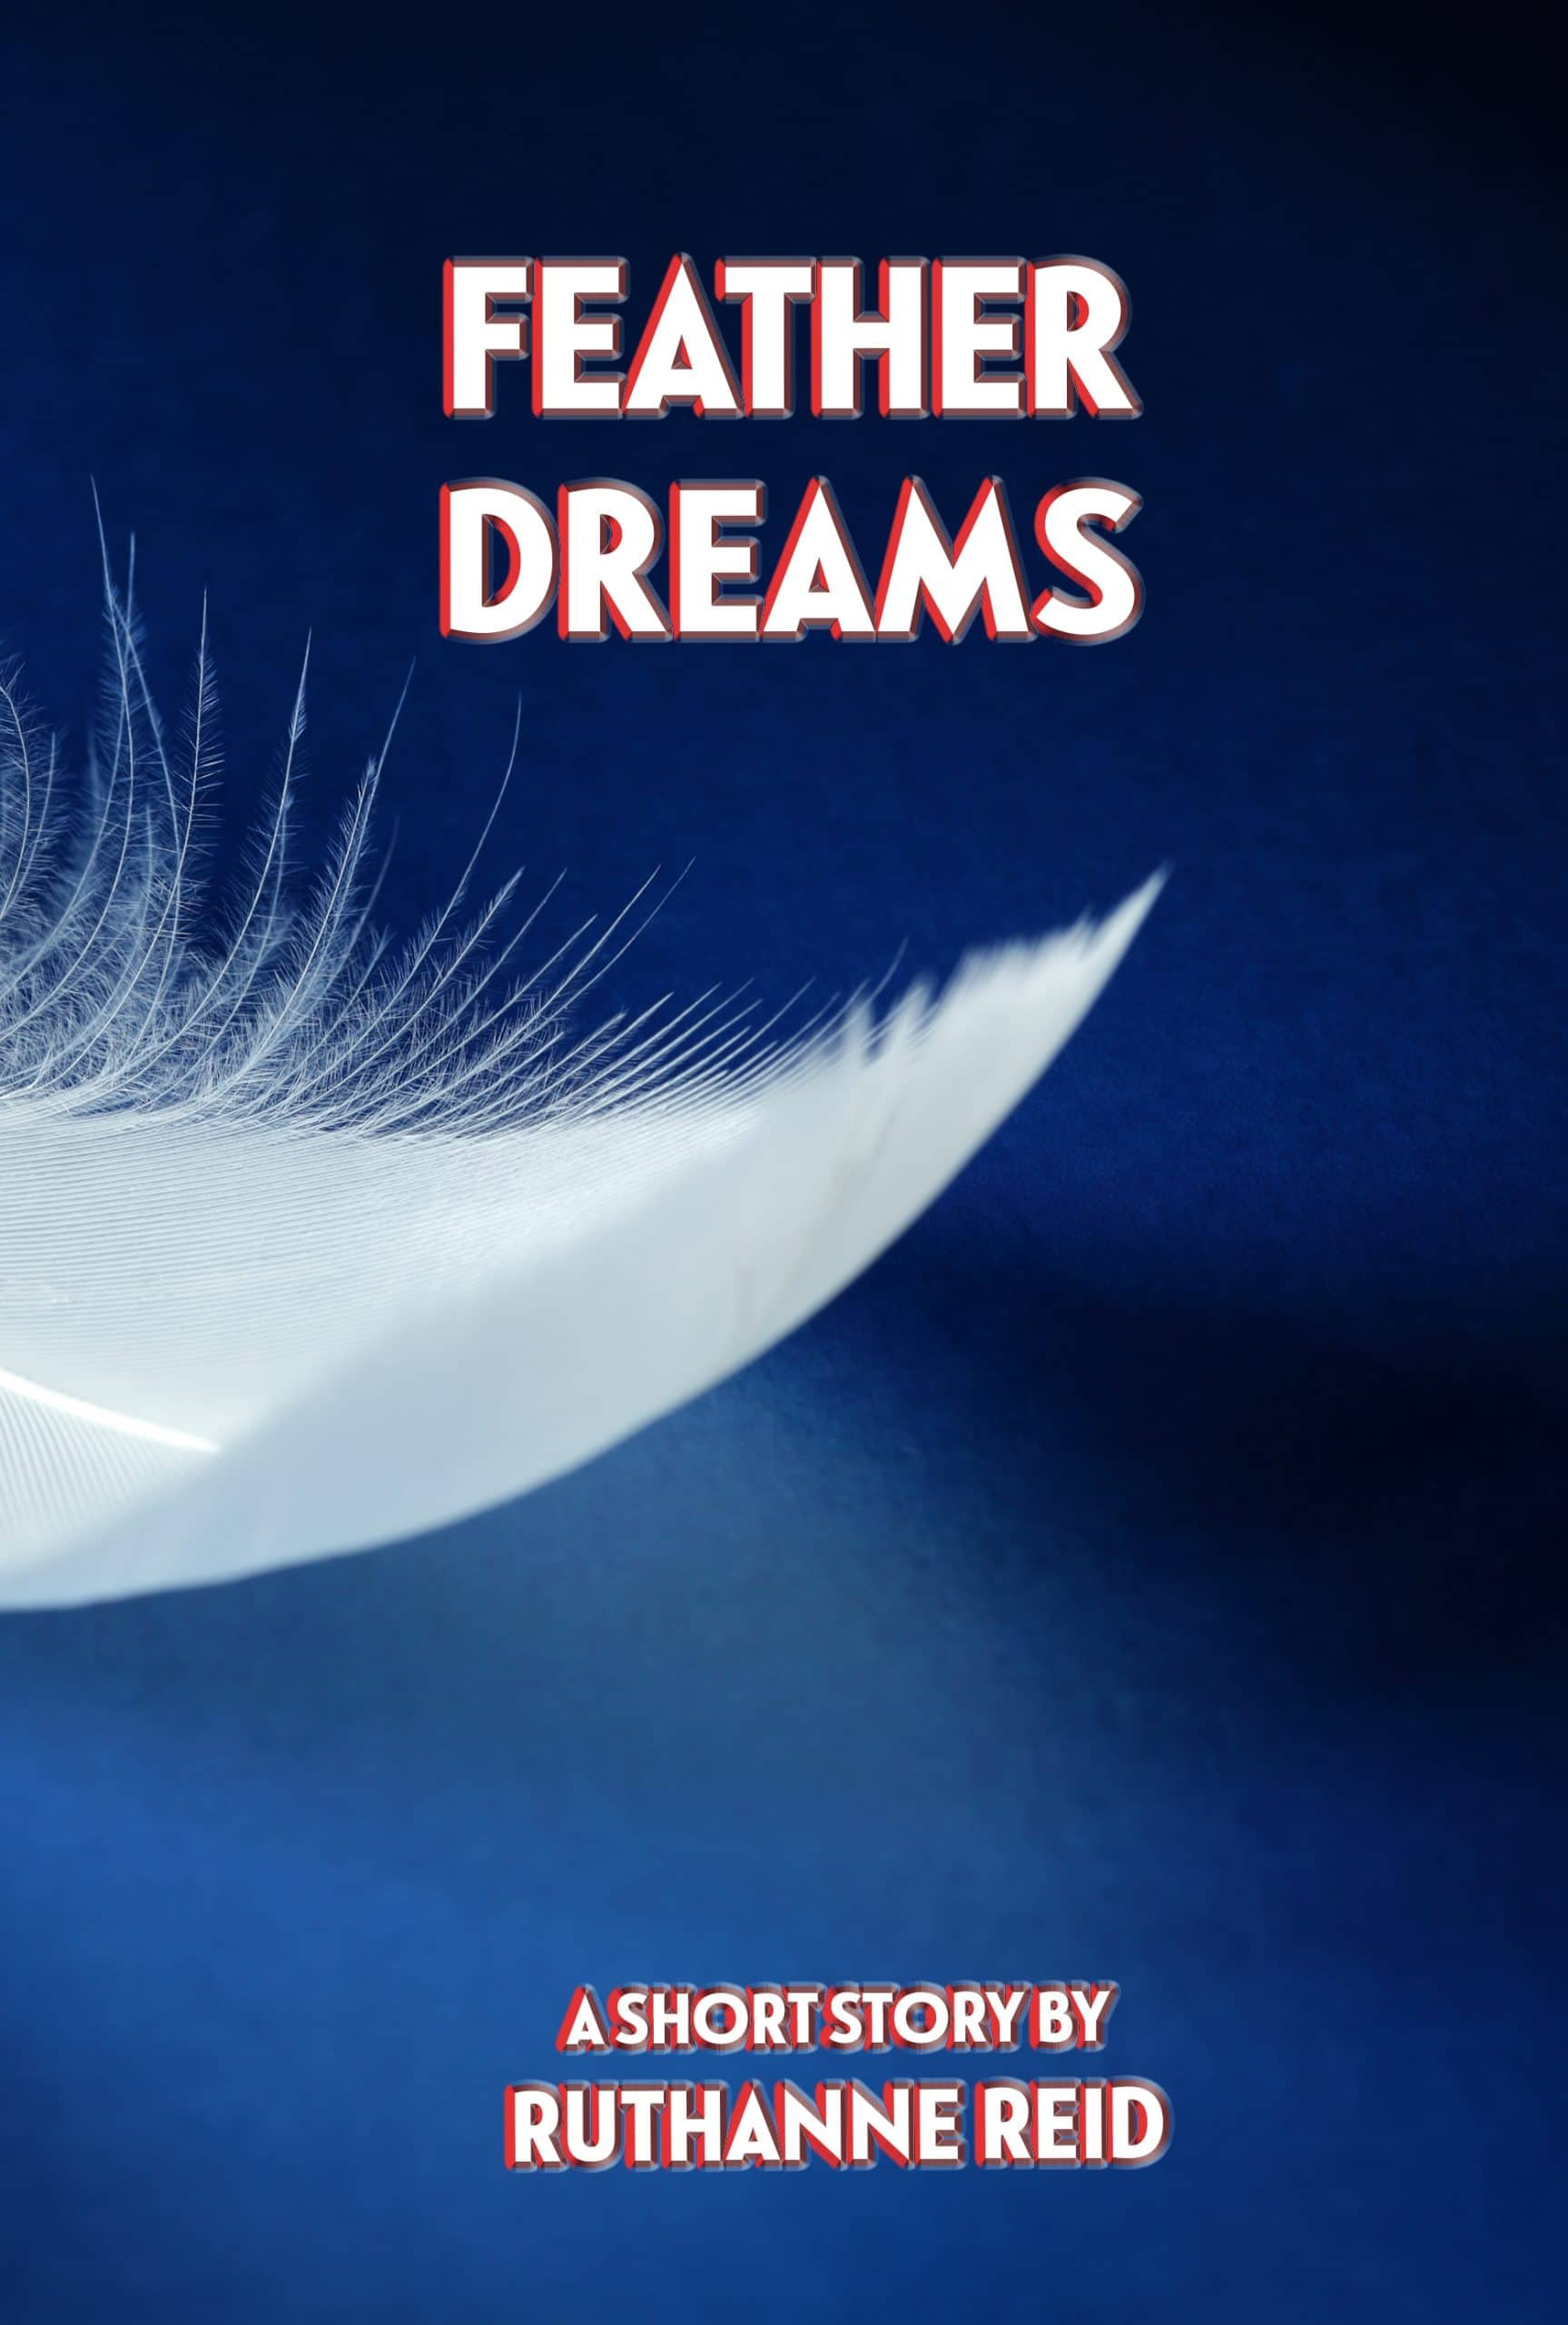 Feather Dreams (A short story by Ruthanne Reid)